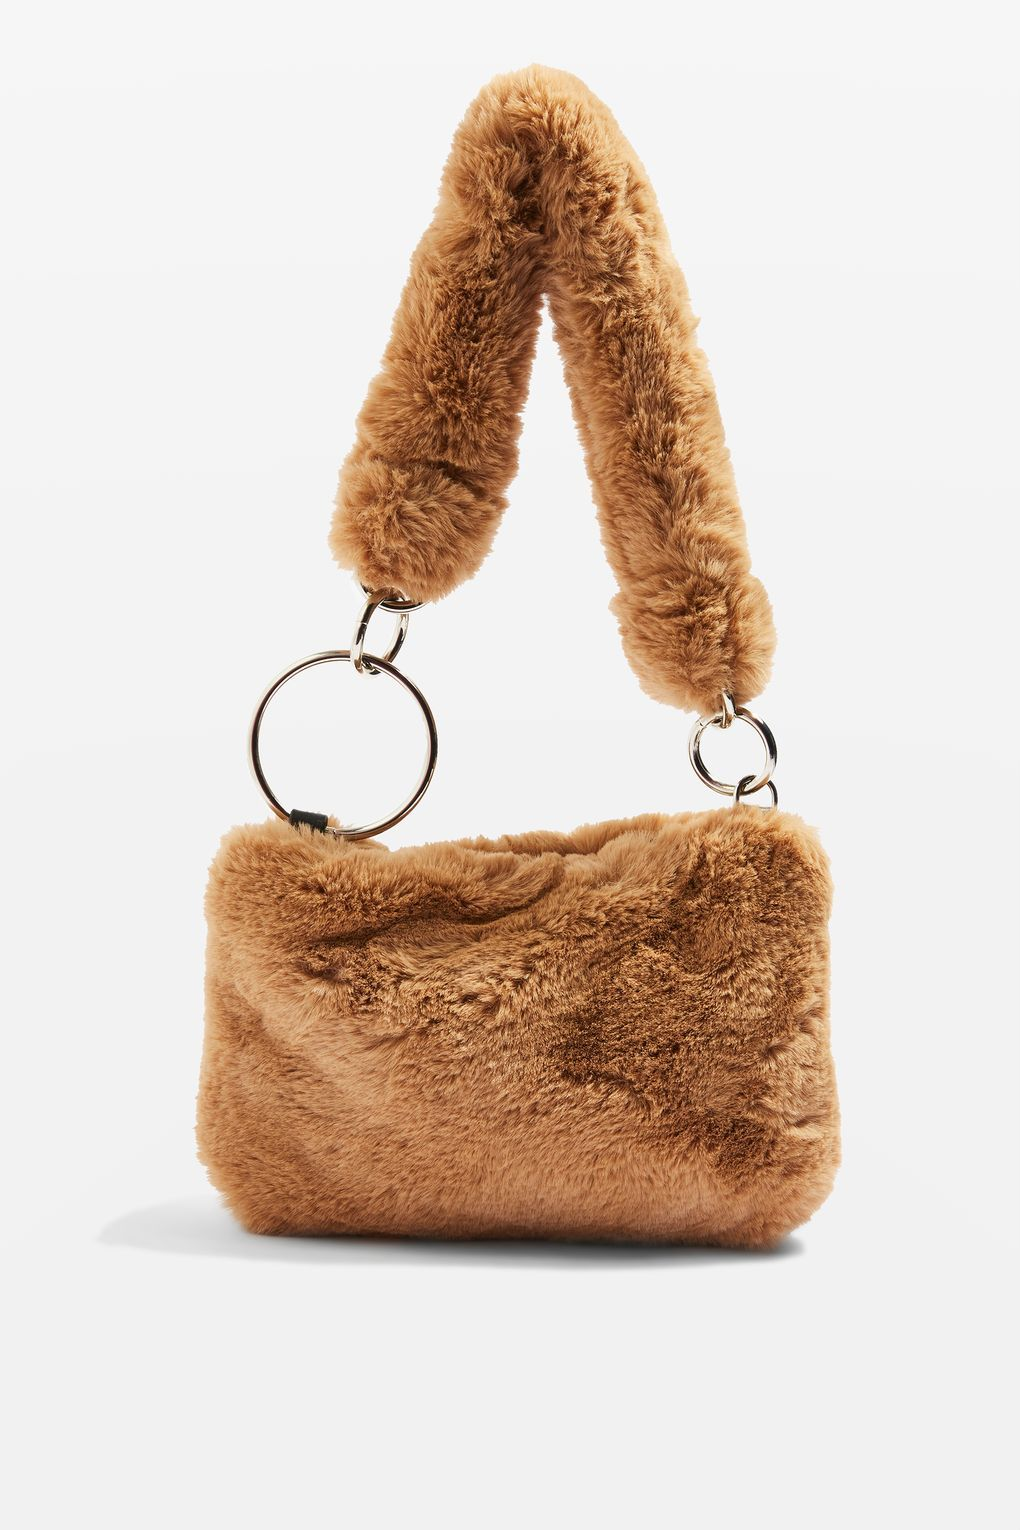 f7b2079eed86 TEDDY Faux Fur Shoulder Bag - Bags   Accessories- Topshop Europe ...